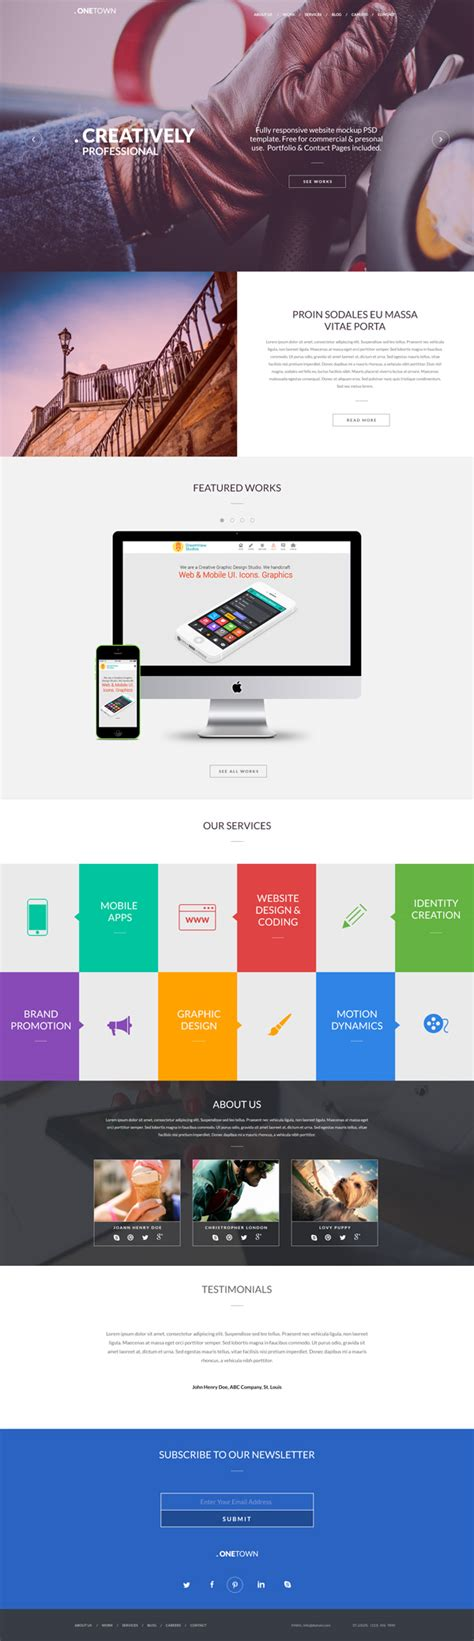 Free Responsive Website Psd Templates Graphicsfuel Free Responsive Website Templates